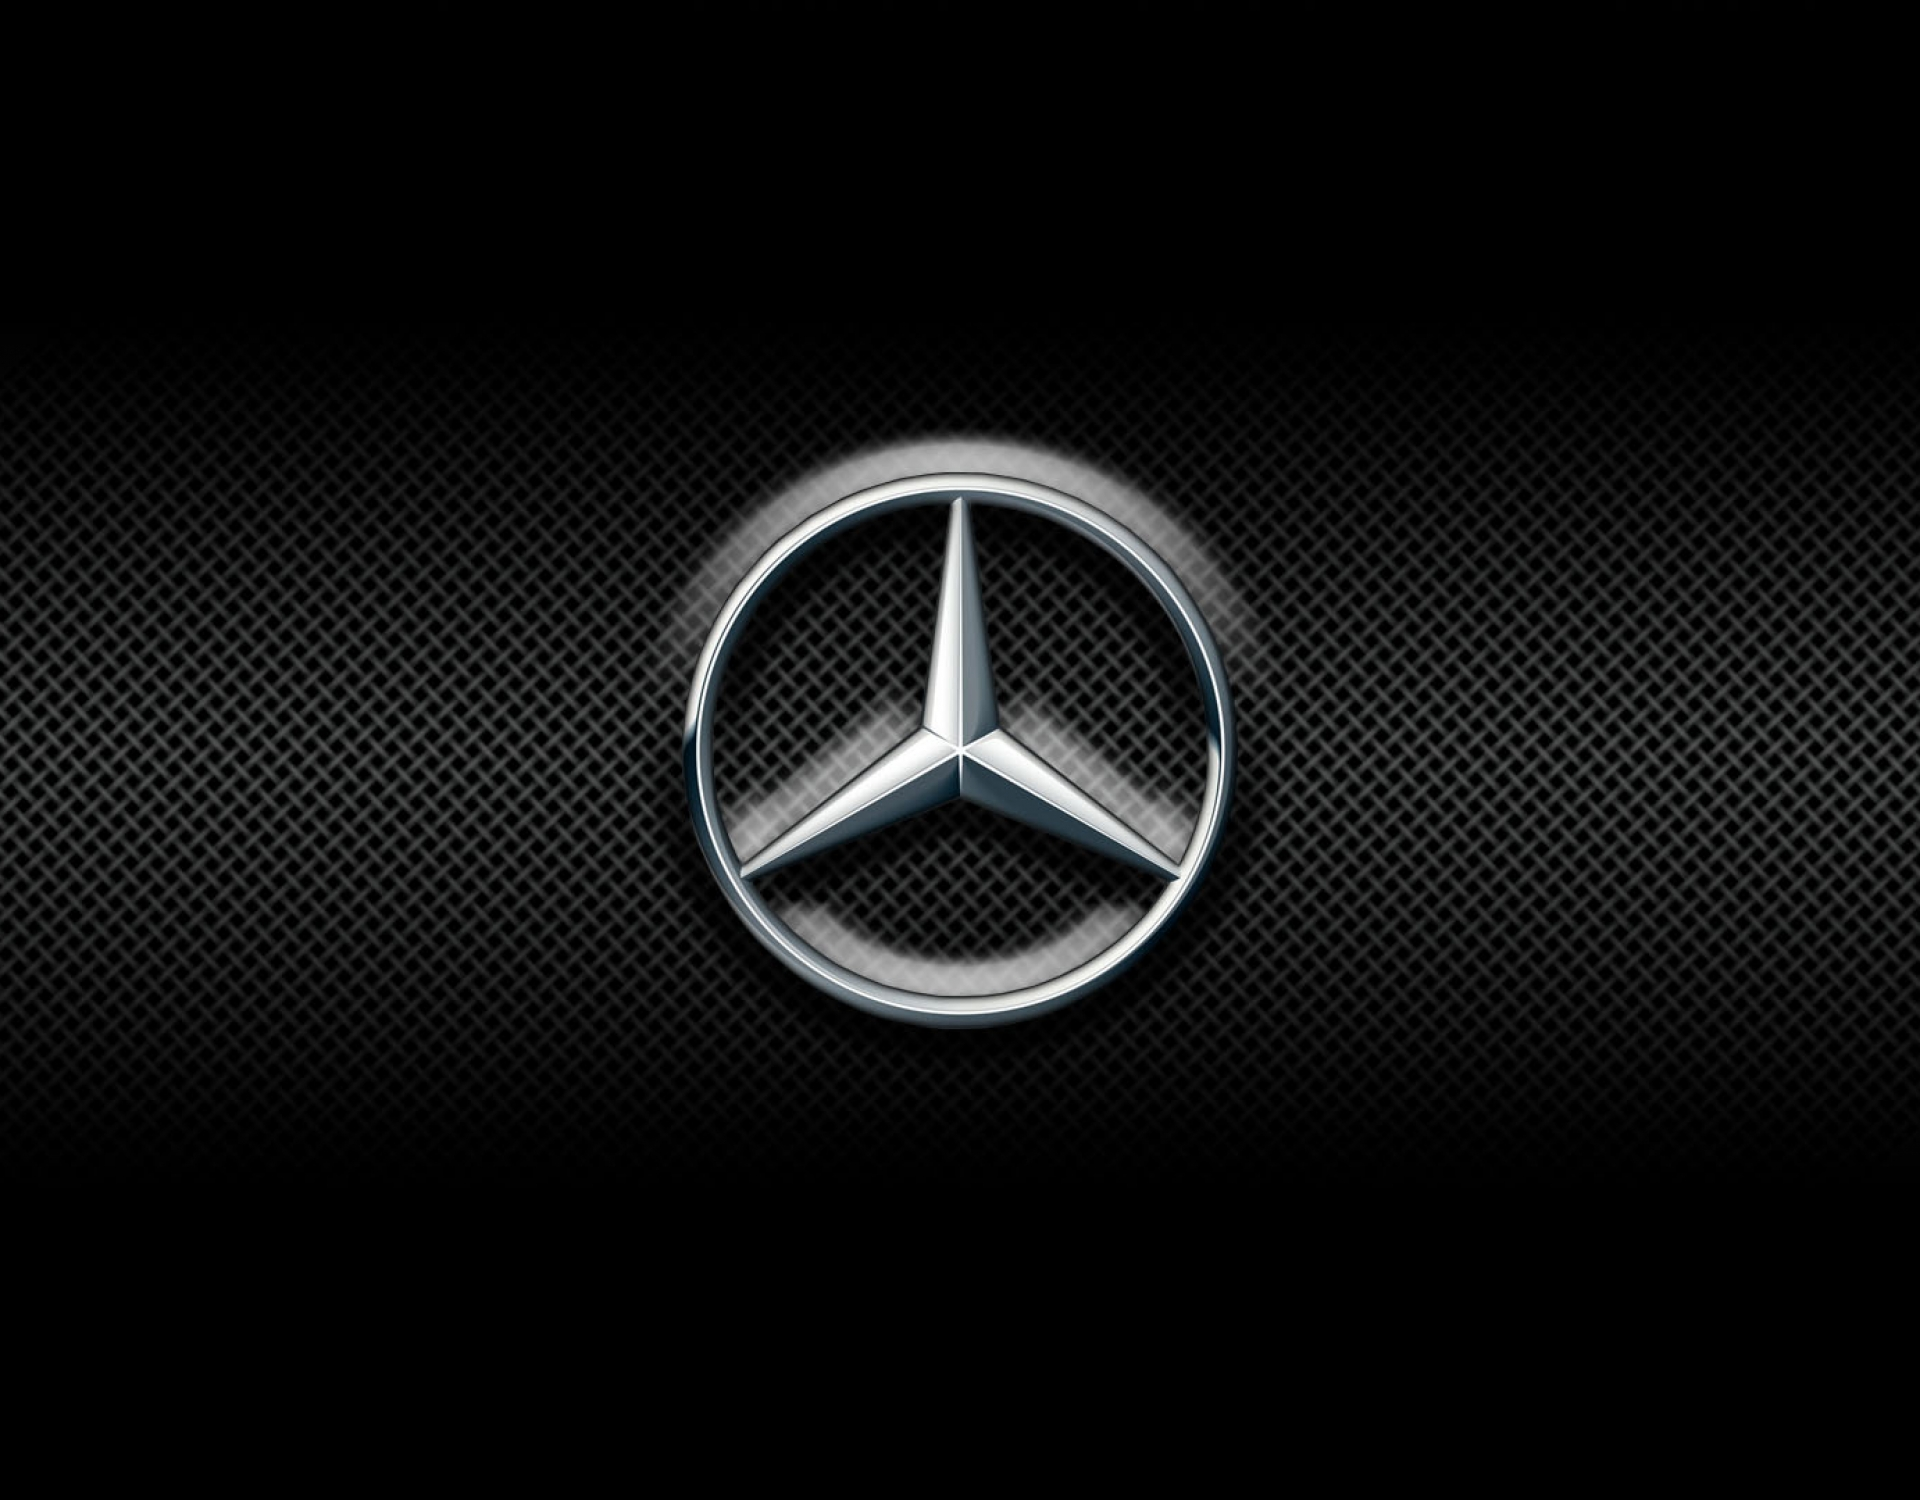 3d Windows Phone Wallpaper Mercedes Benz Wallpaper 38 1920x1500